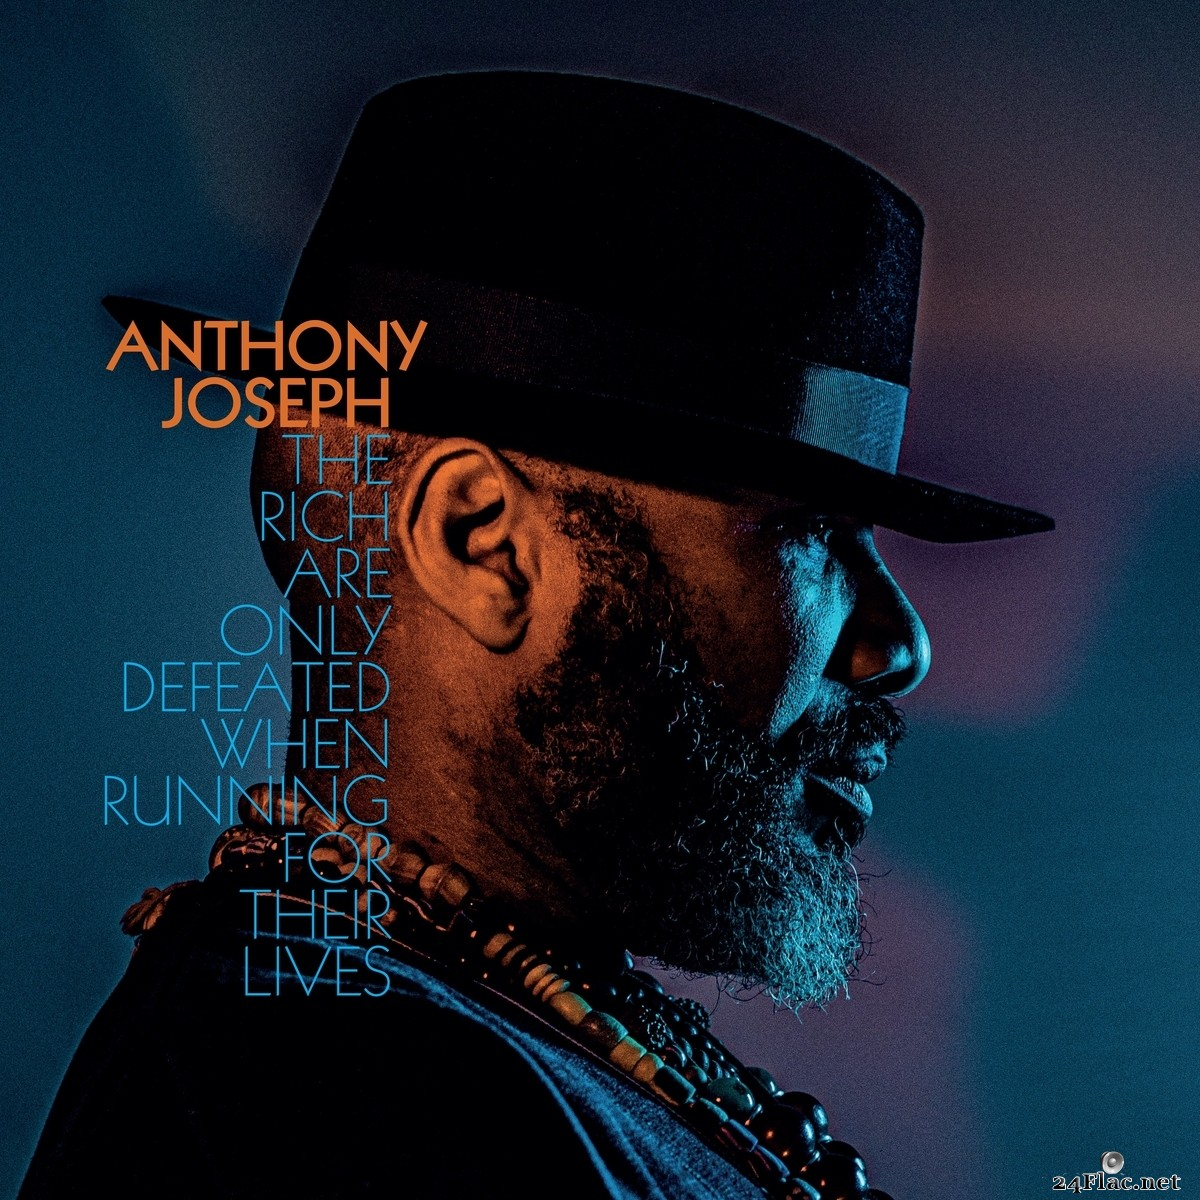 Anthony Joseph - The Rich Are Only Defeated When Running for Their Lives (2021) FLAC + Hi-Res